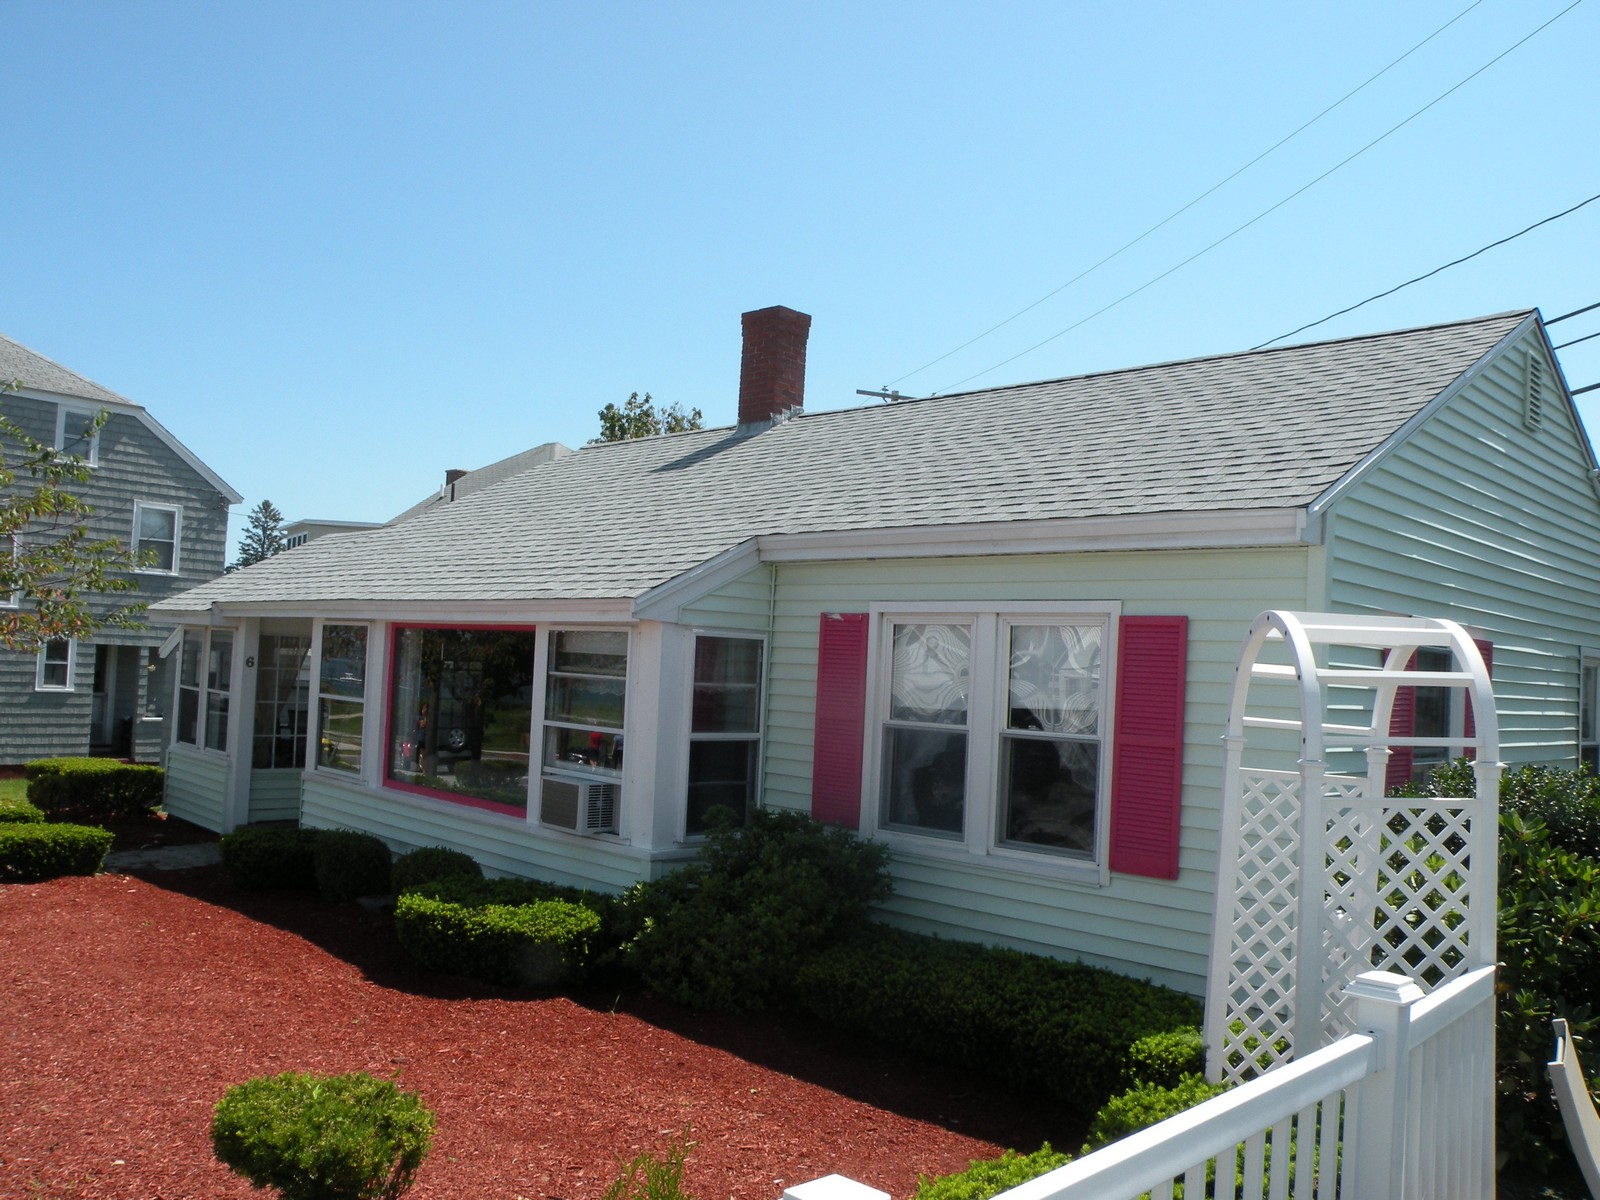 Single Family Home for Sale at Quaint York Beach Cottage 6 Long Beach Avenue York, Maine 03909 United States